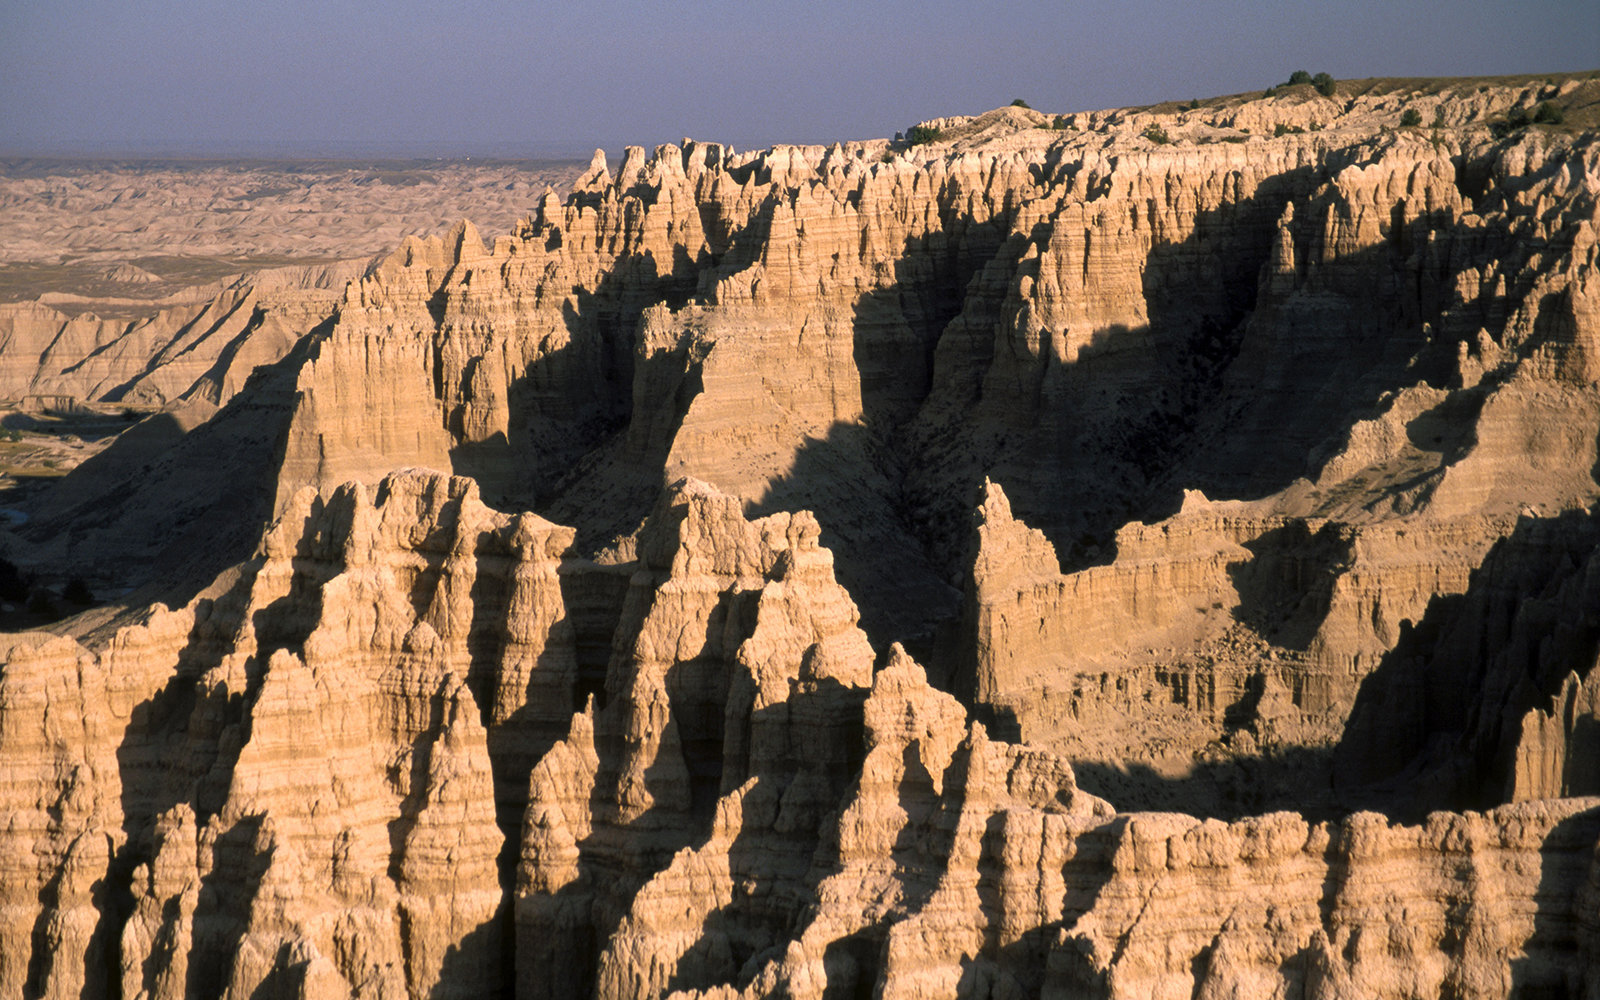 DF8WBB View from Sheep Mountain Table, remote area of Badlands National Park. South Dakota. USA